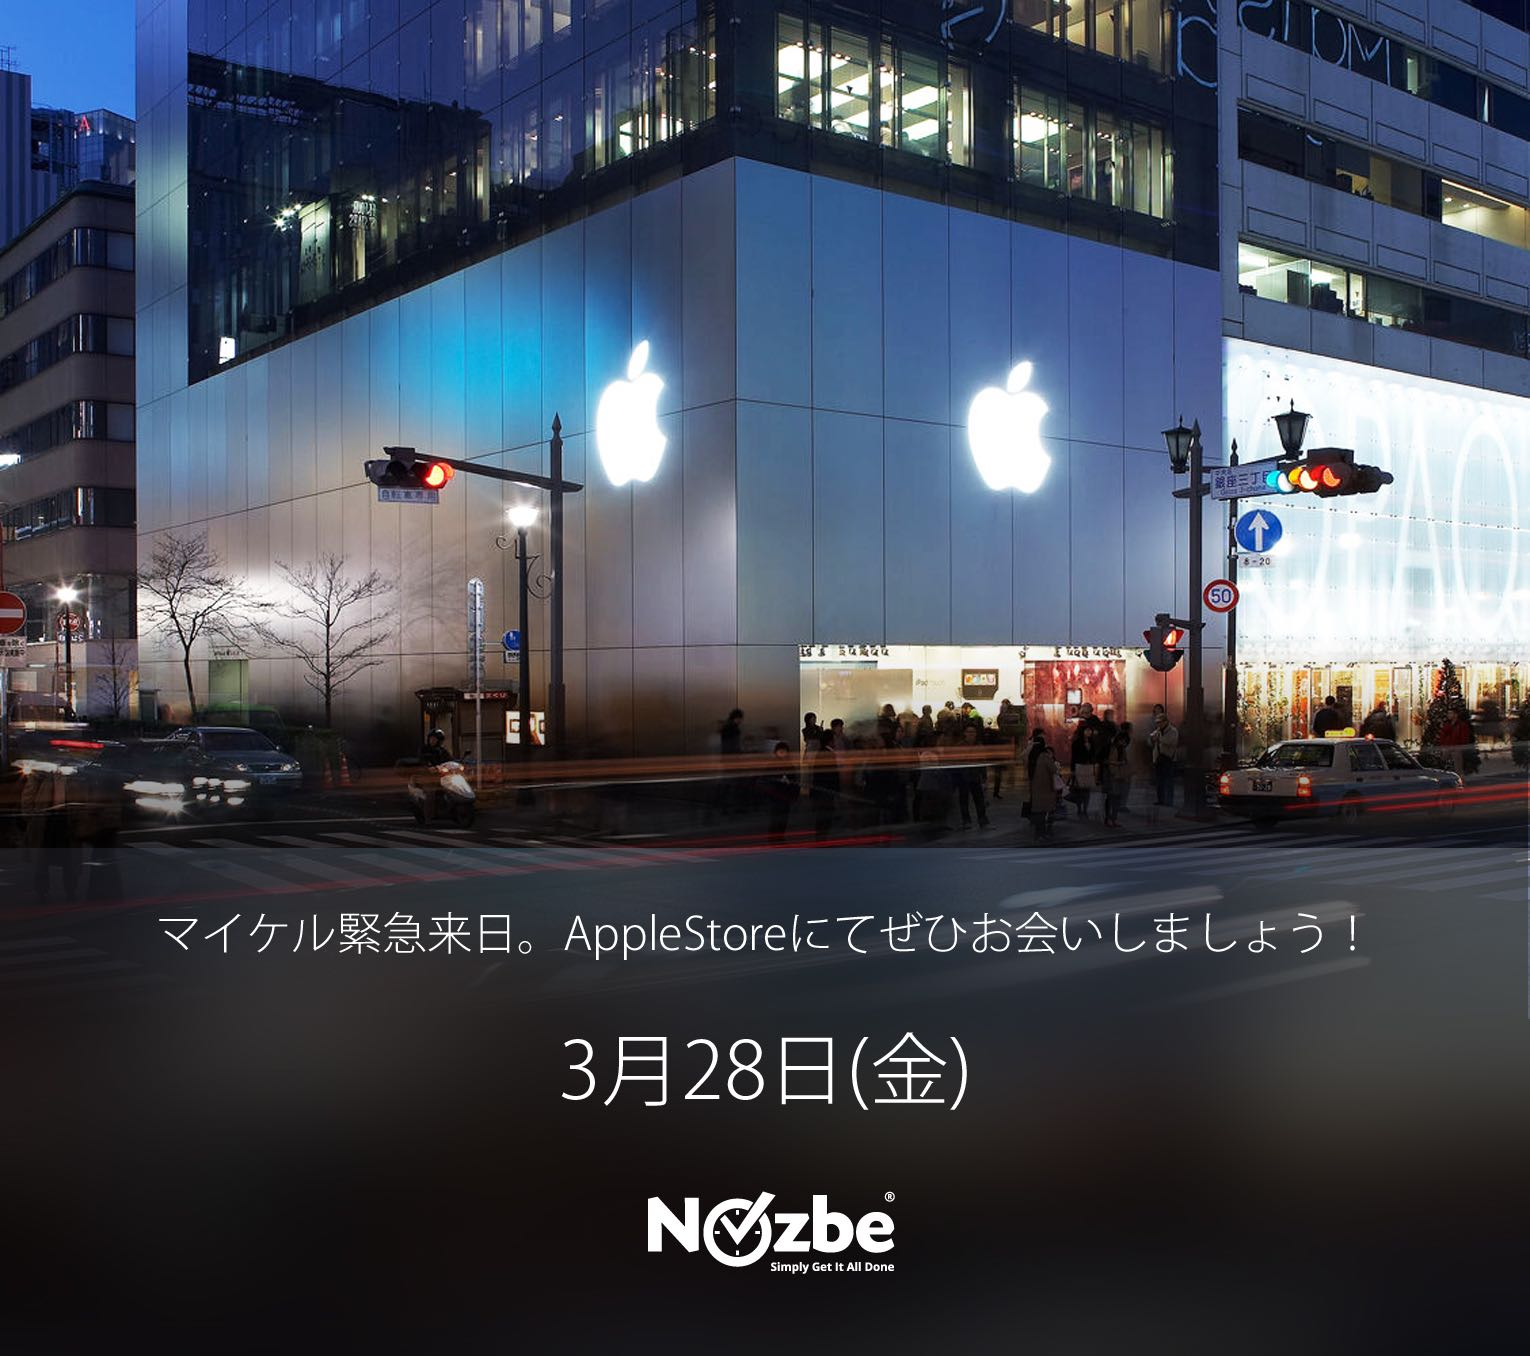 Apple Store Event